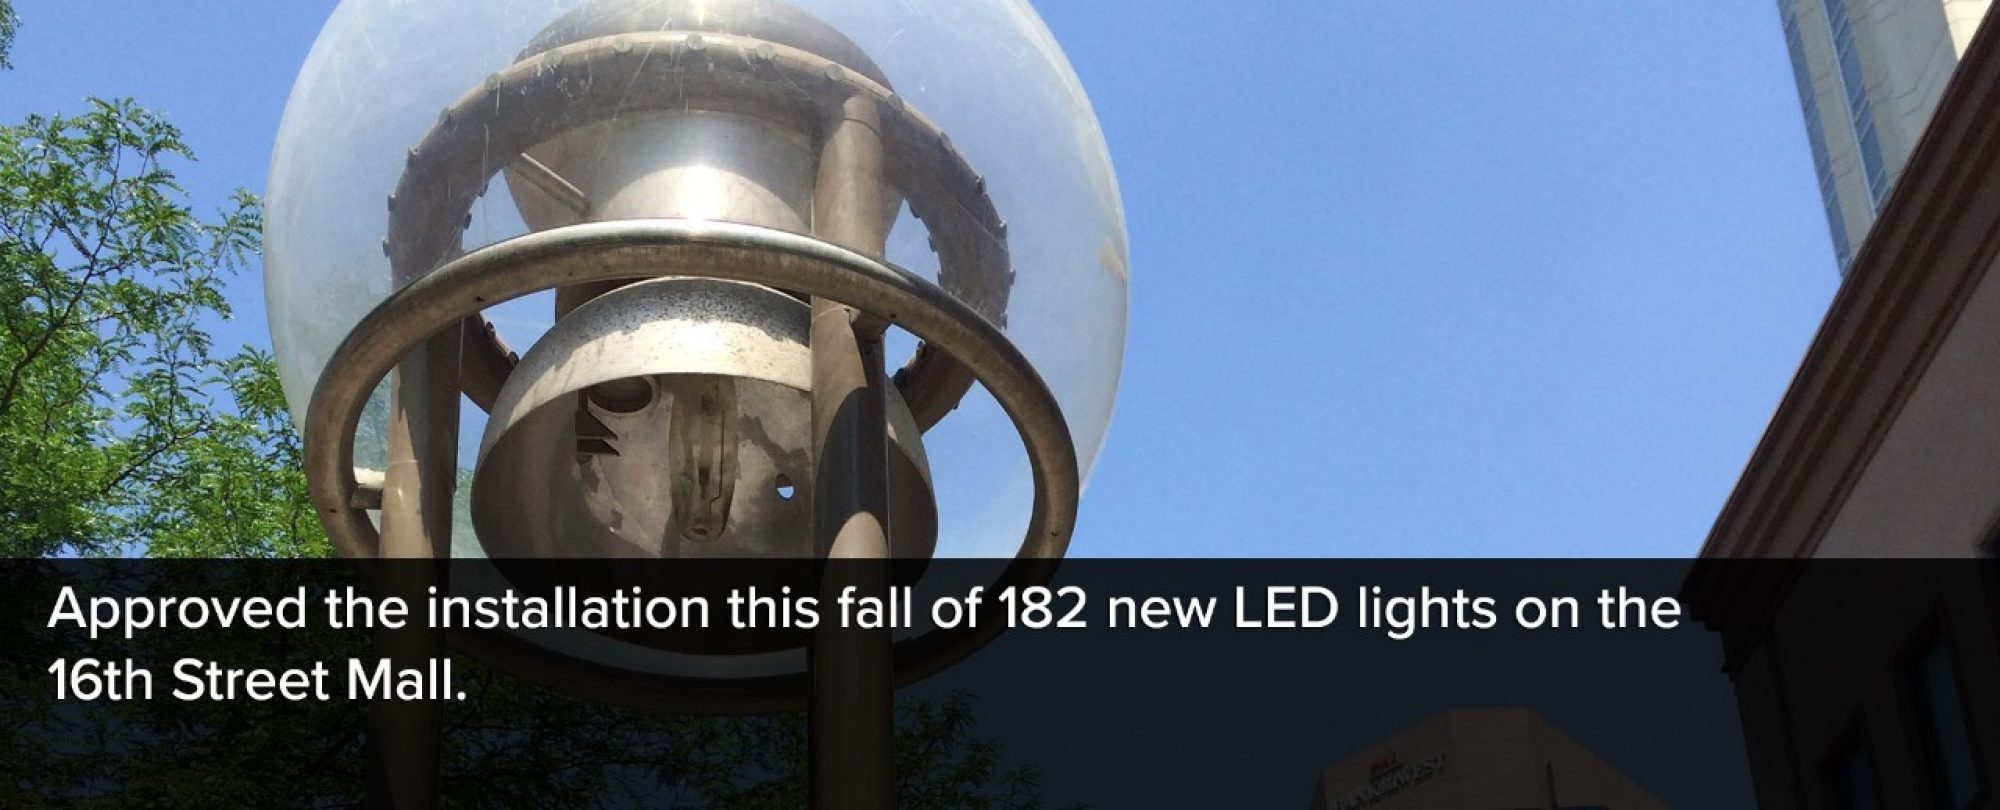 Photo close-up of one of the 16th street mall street lamps. Denver approved the installation of 182 new LED lights along the mall